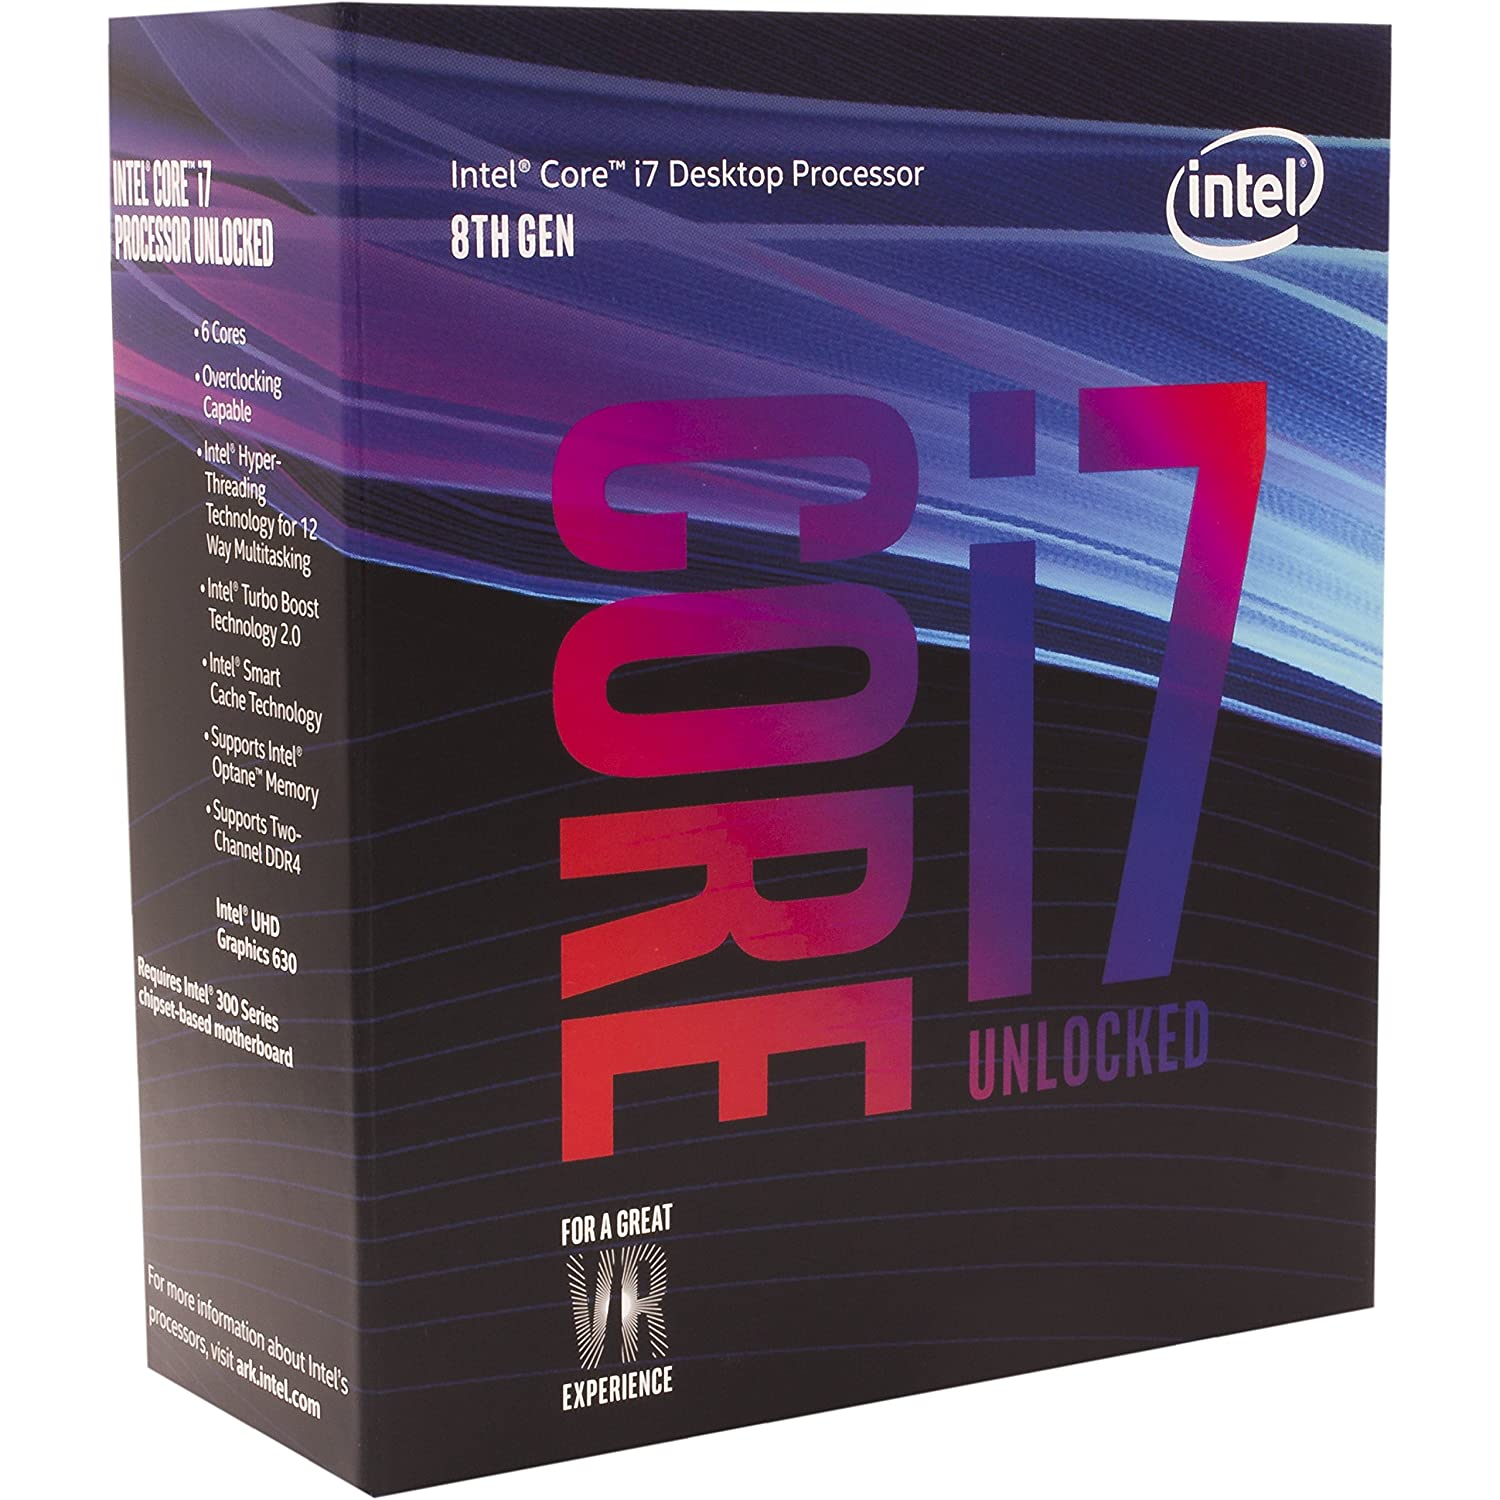 Intel Core i7-8700K Desktop Processor 6 Cores